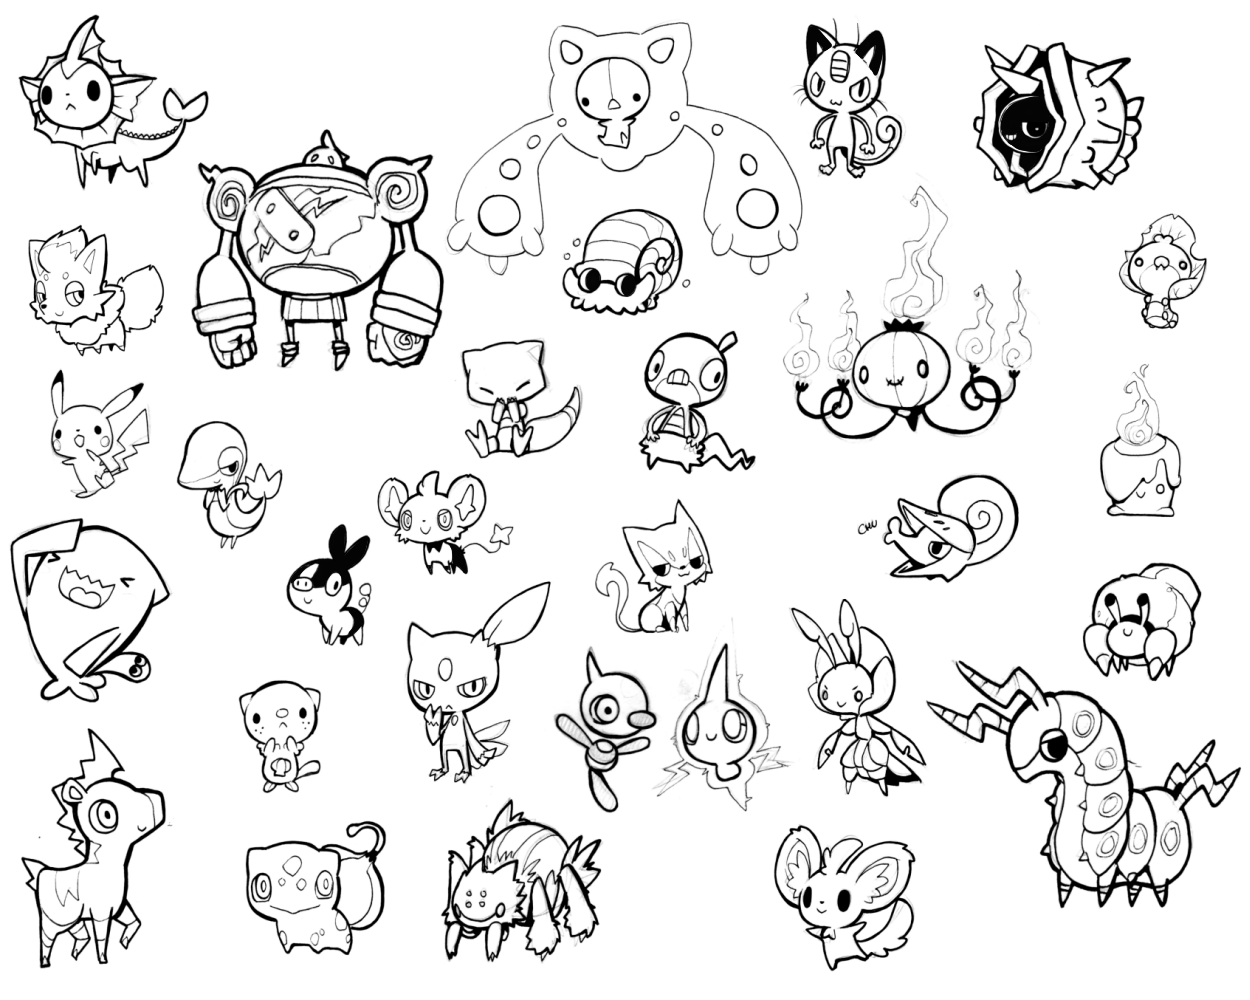 Pokemon, Pokemon Everywhere By Parororo On DeviantArt